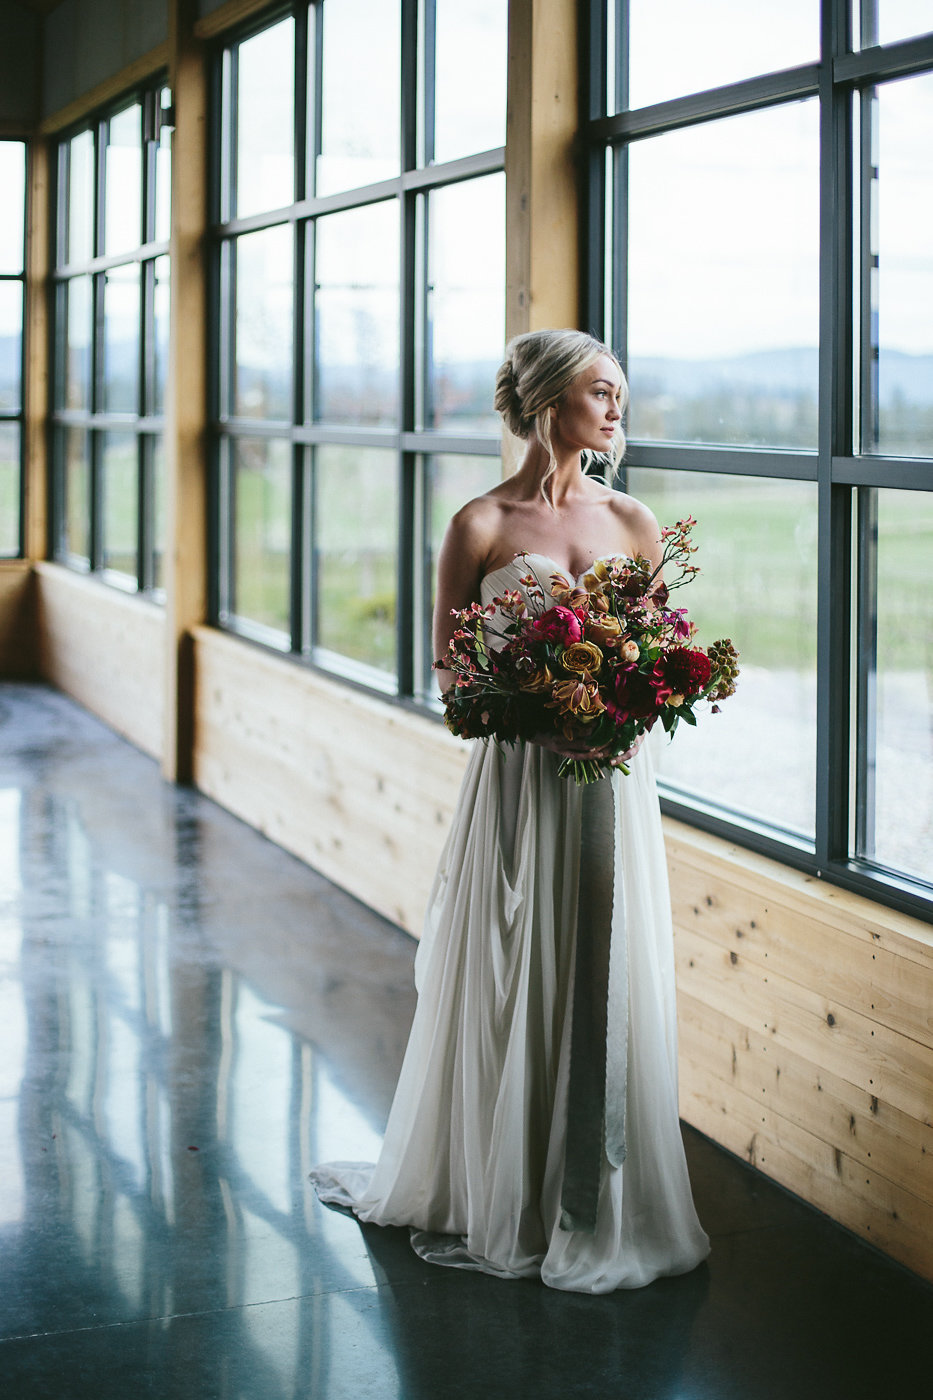 Rich Toned Industrial Wedding Inspiration - photo by Hannah Victoria Photography http://ruffledblog.com/rich-toned-industrial-wedding-inspiration